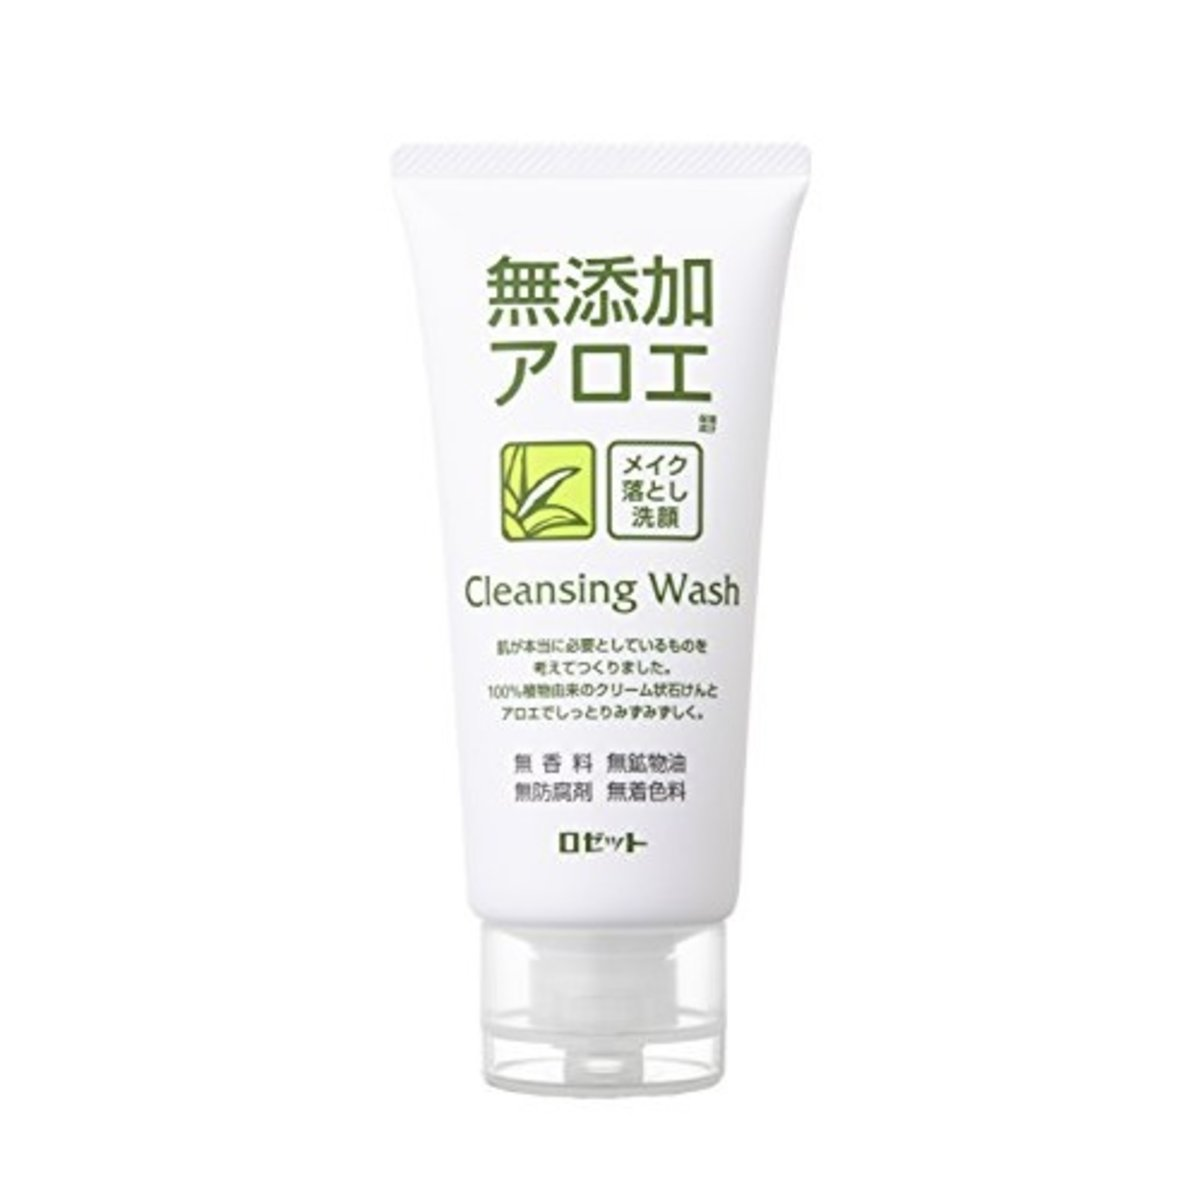 additive-free foaming facial cleanser 120g aloe